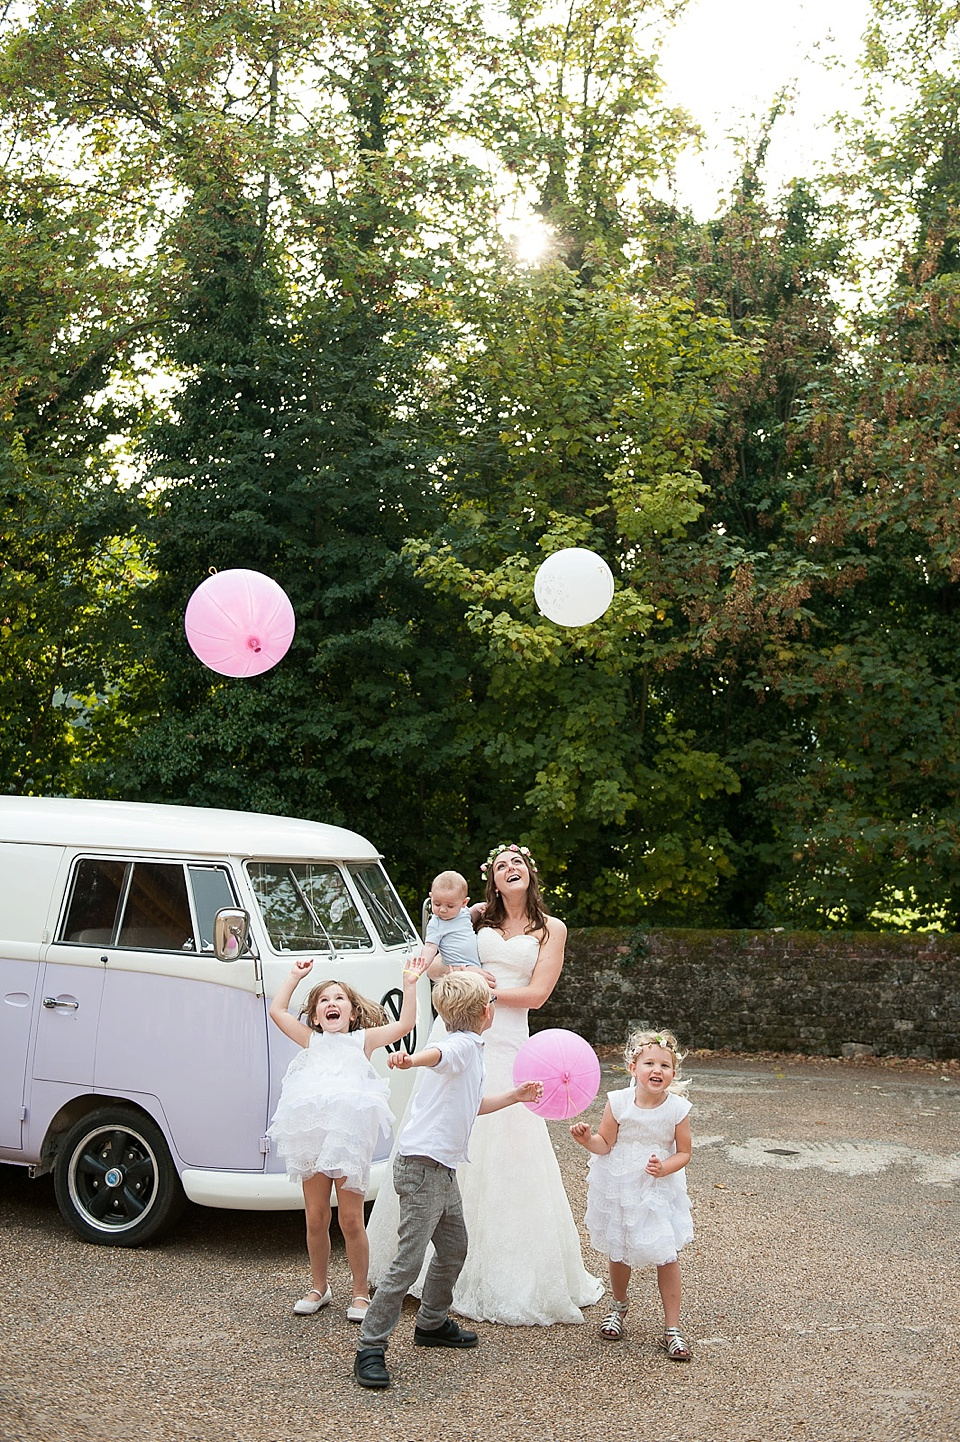 Page boys flower girls and bride by vintage VW camper van releasing giant balloons - English country garden wedding at the Walled Garden at Cowdray Sussex - natural wedding photographer © Fiona Kelly photography